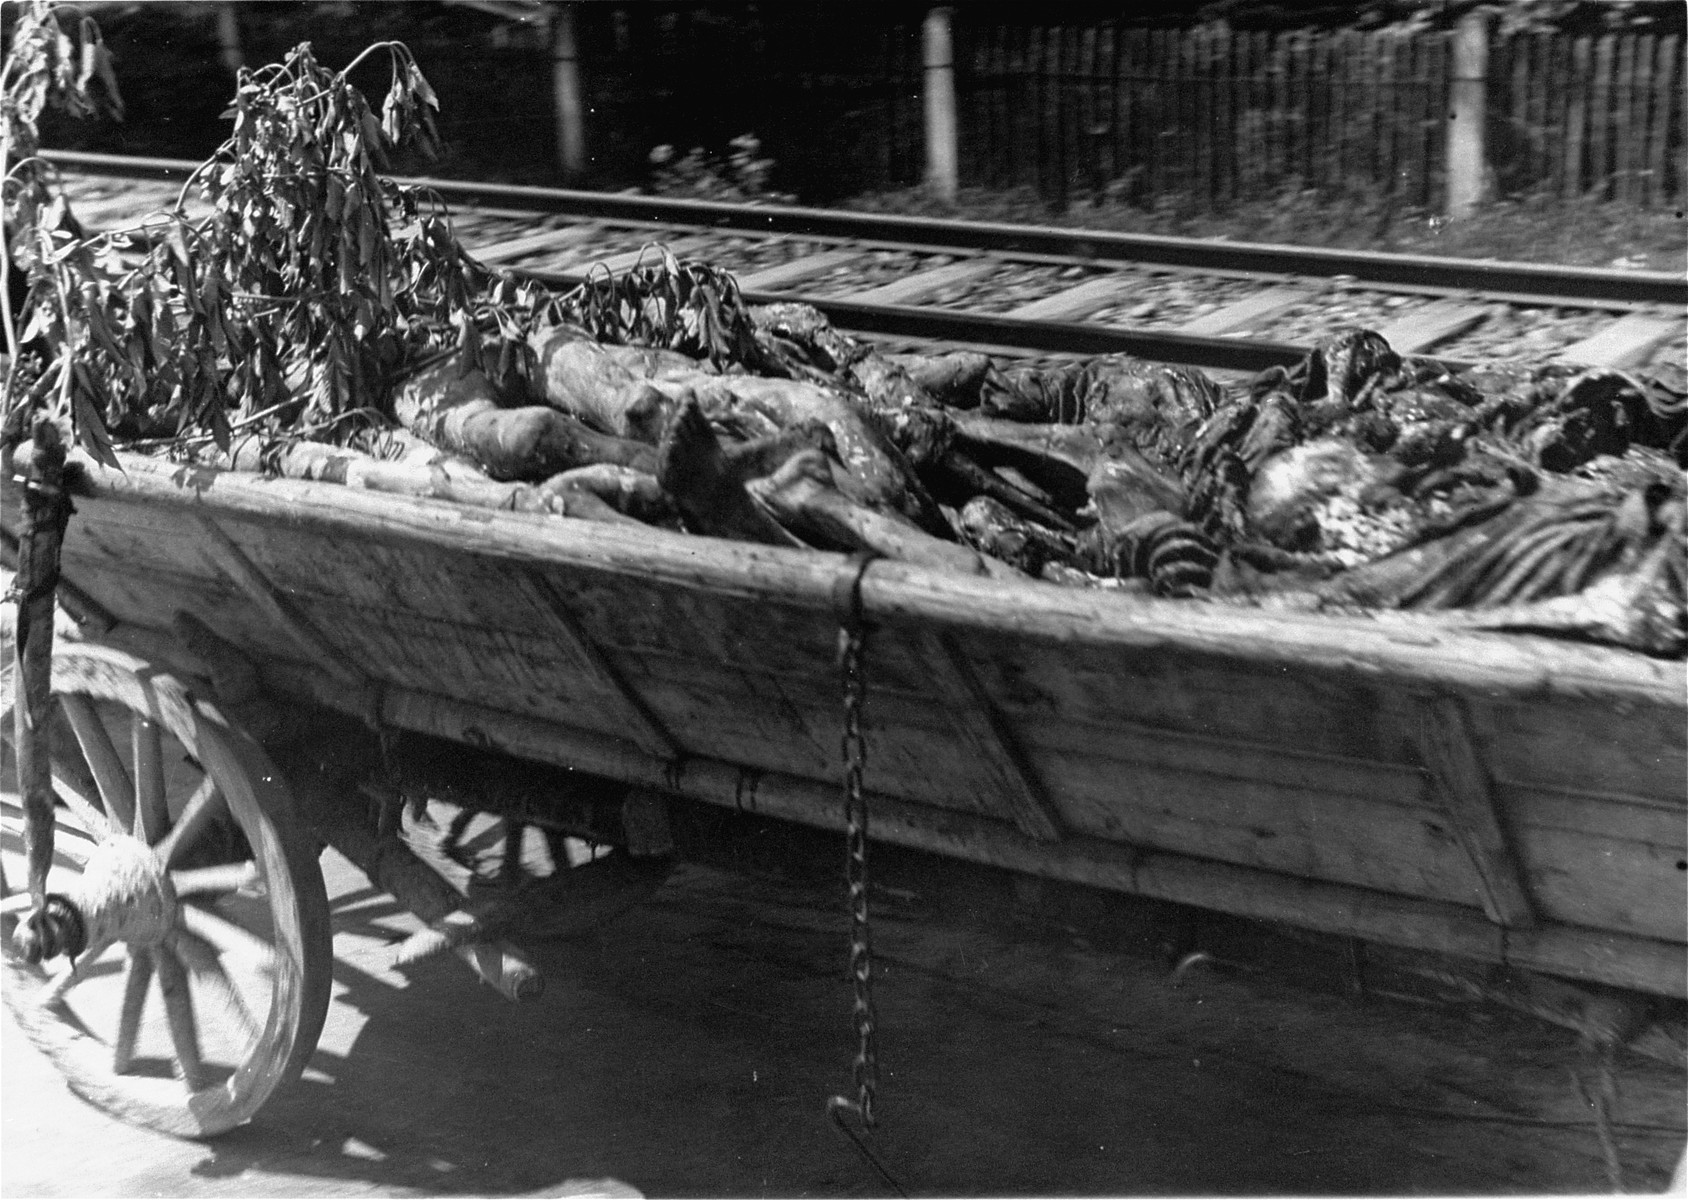 Corpses from the Dachau concentration camp on route to burial in a cart levied from local farmers.  Allied authorities required local farmers to drive their loaded carts through the town of Dachau as an education for Dachau residents.